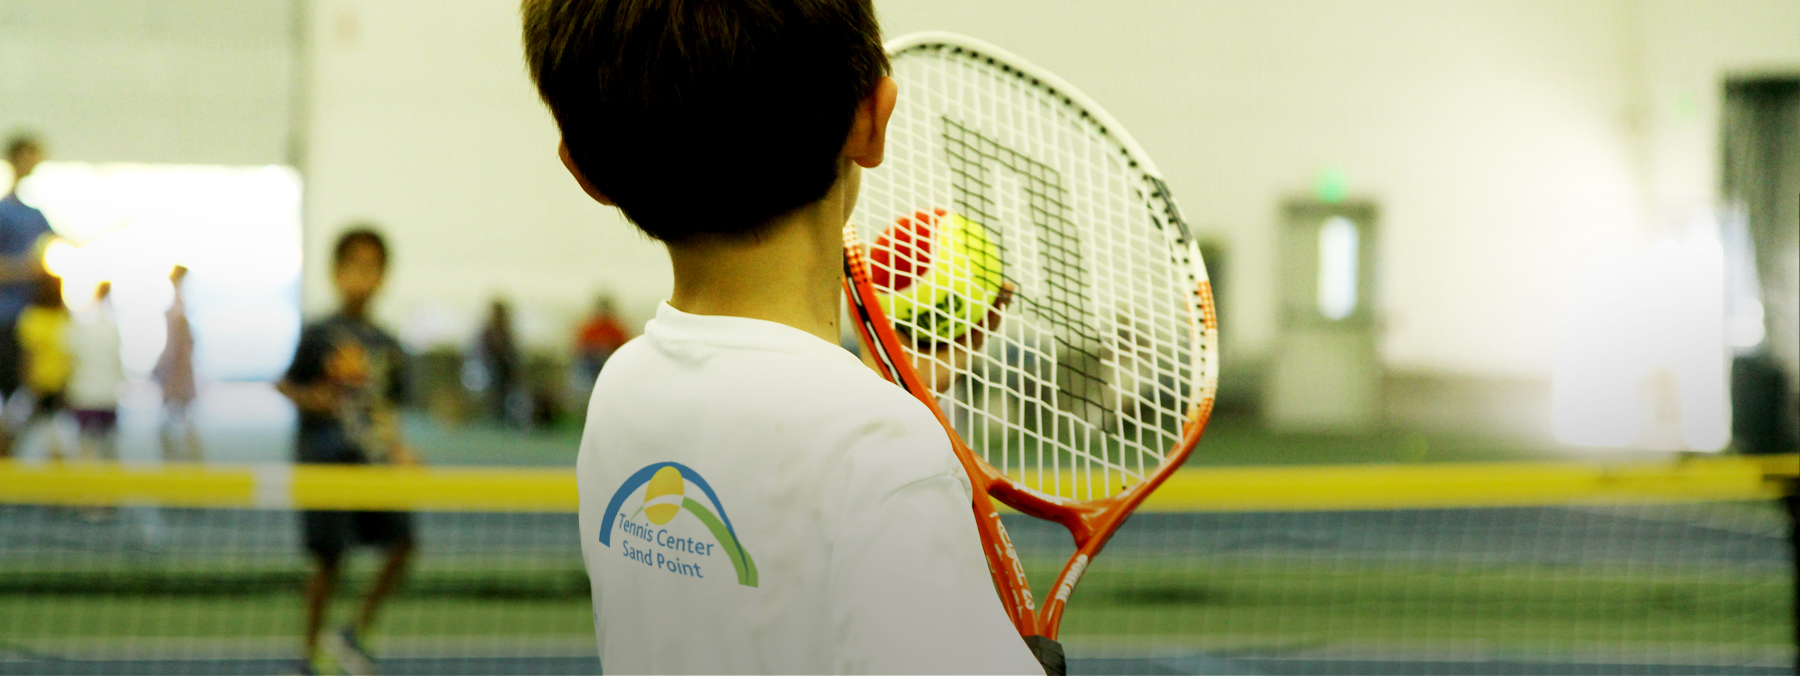 Junior Tennis program for children between the ages of 3 and 18